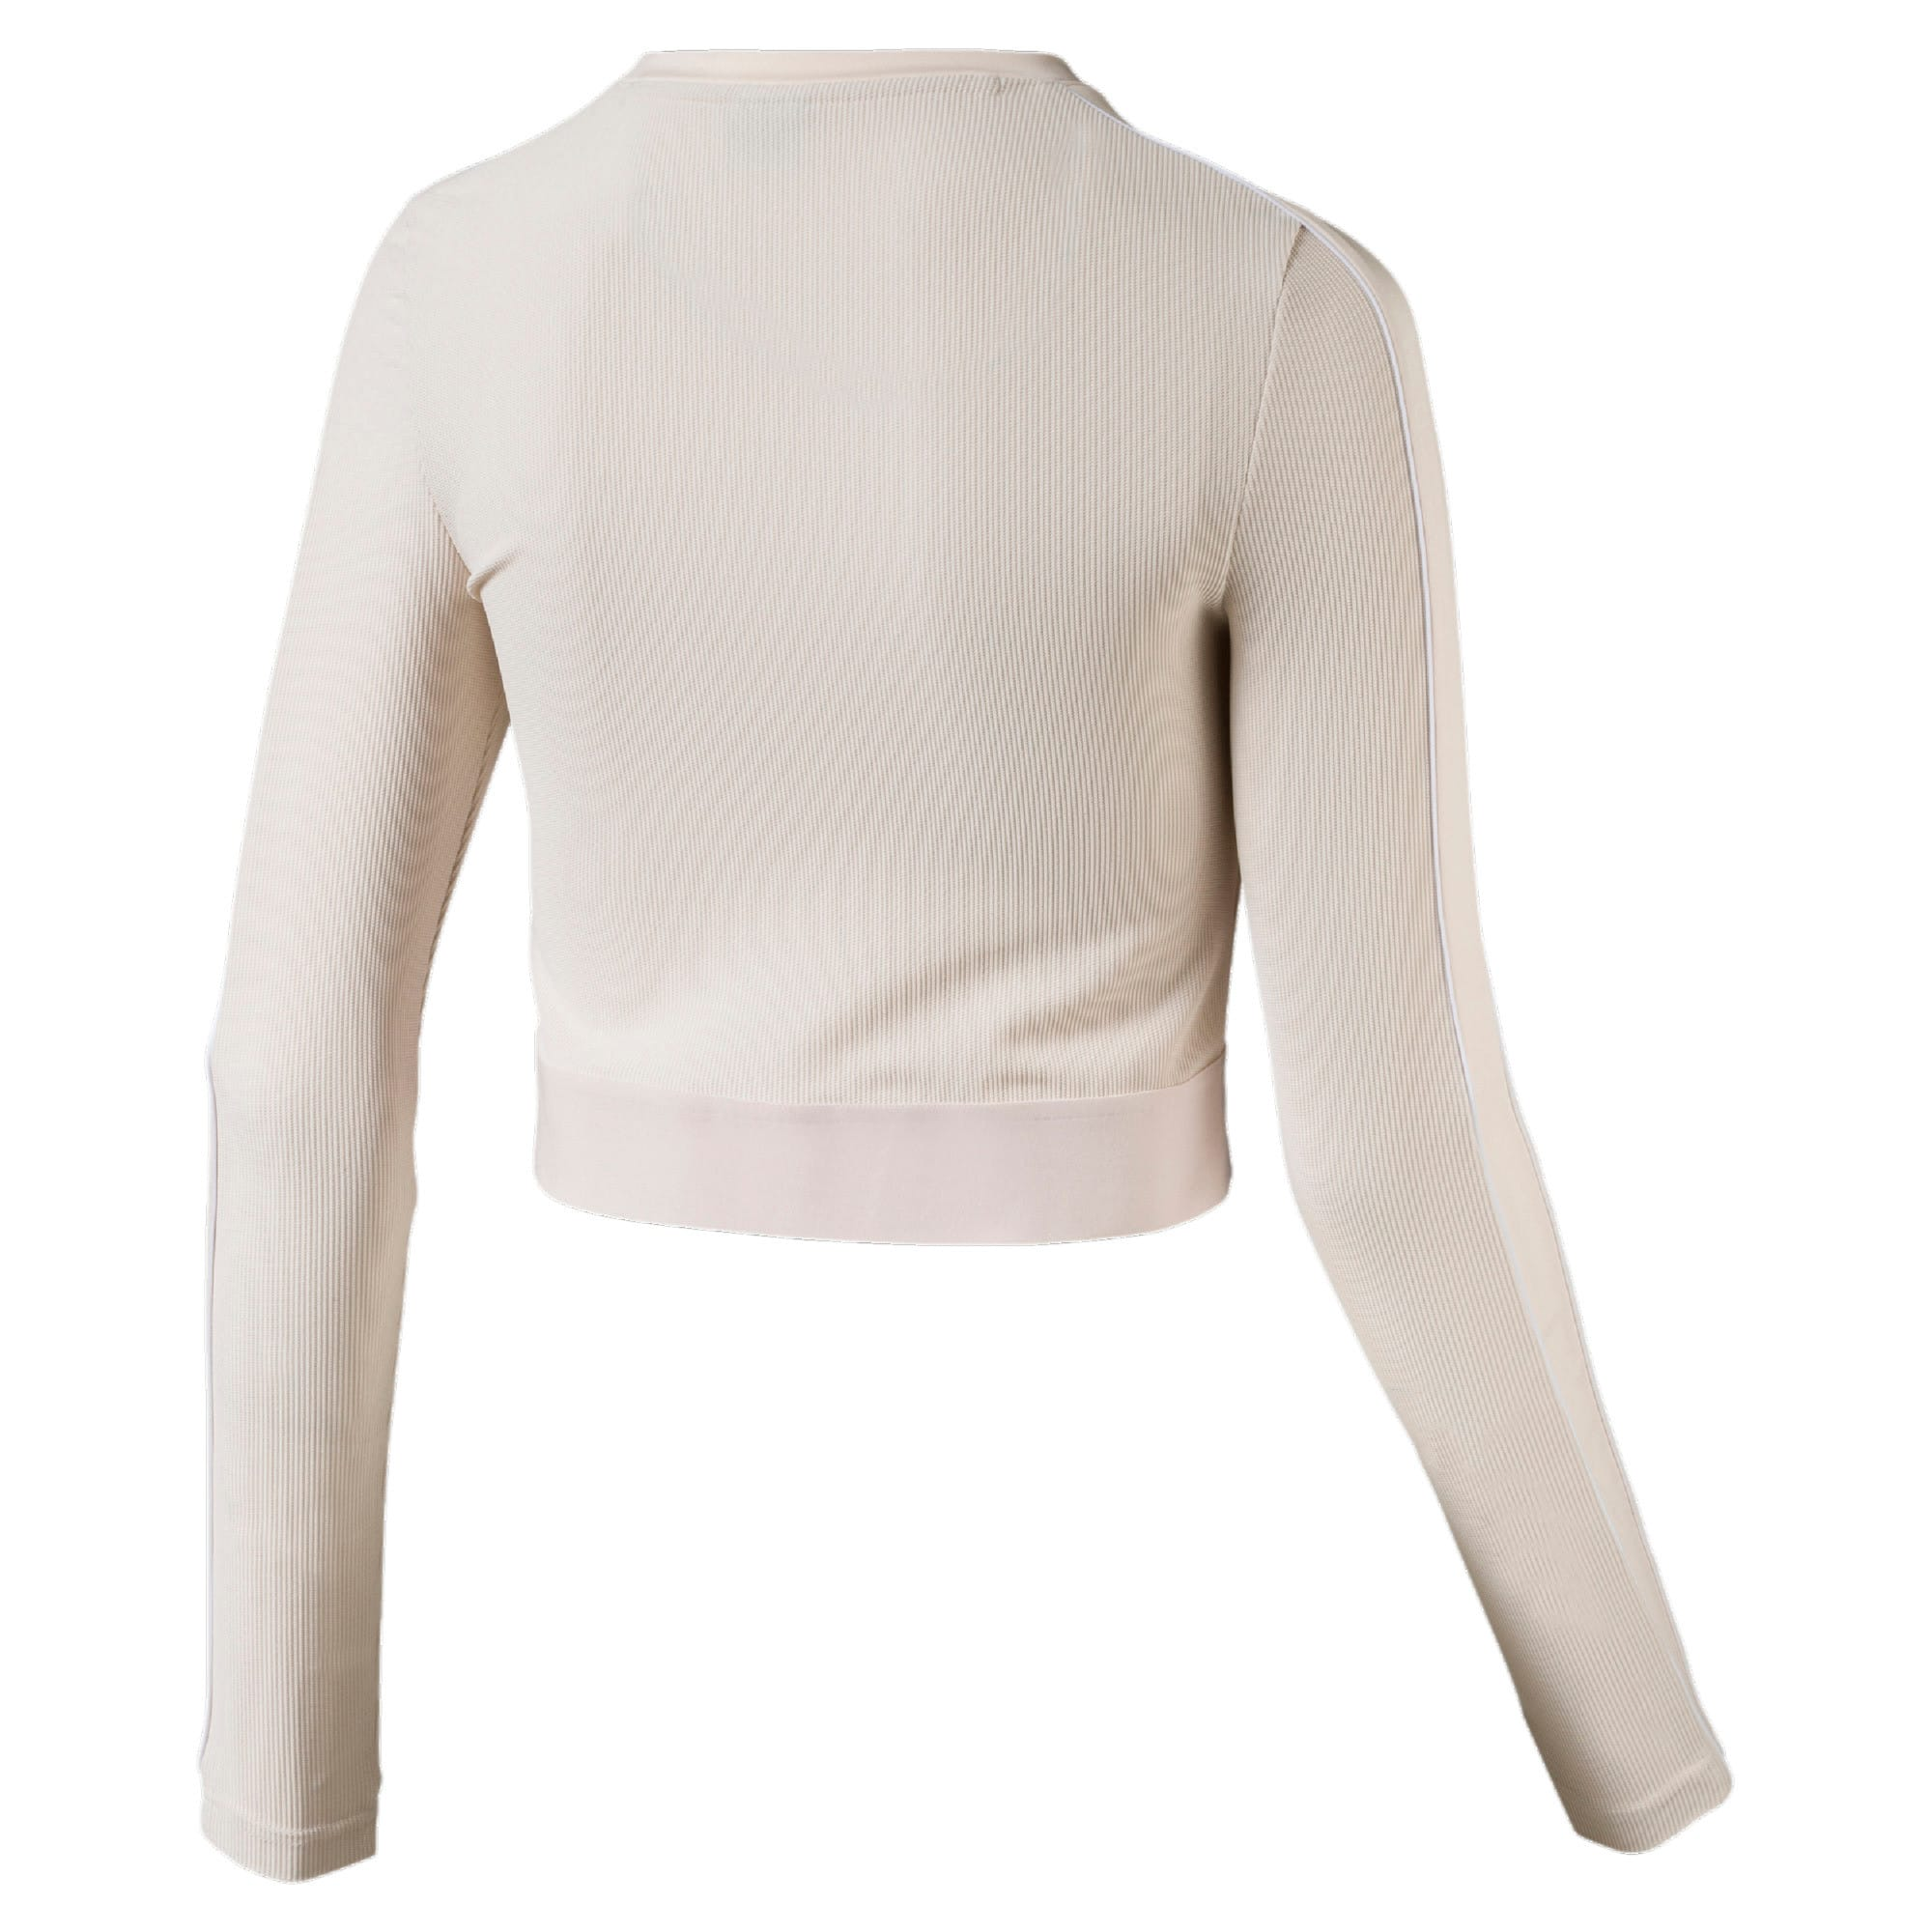 Thumbnail 5 of Classics Rib Cropped Long Sleeve Women's Top, Pastel Parchment, medium-SEA